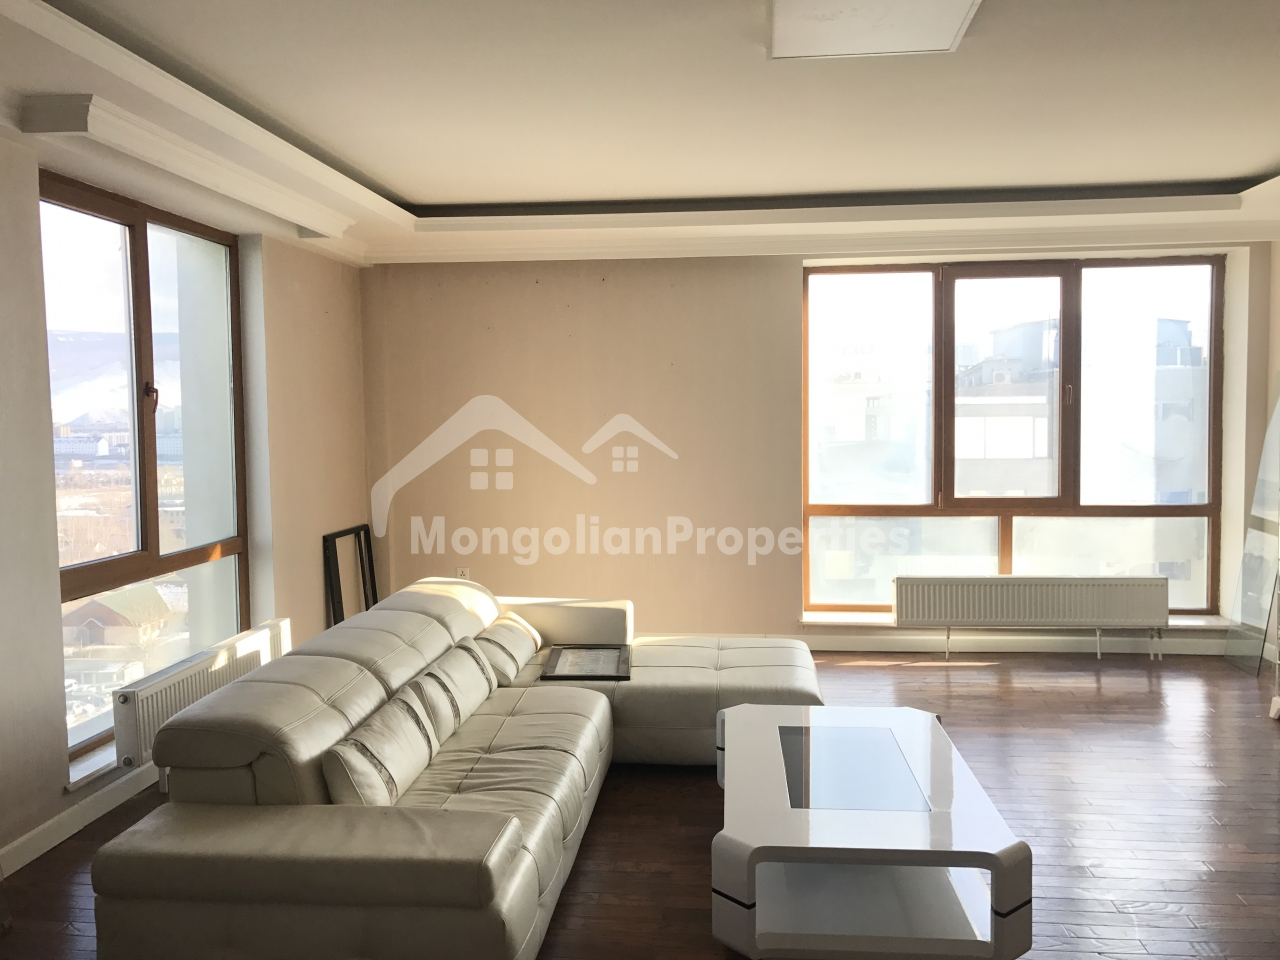 One Bedroom Apartment With Office For Sale Elit Apartments Central 192m2 2 Bedroom 1